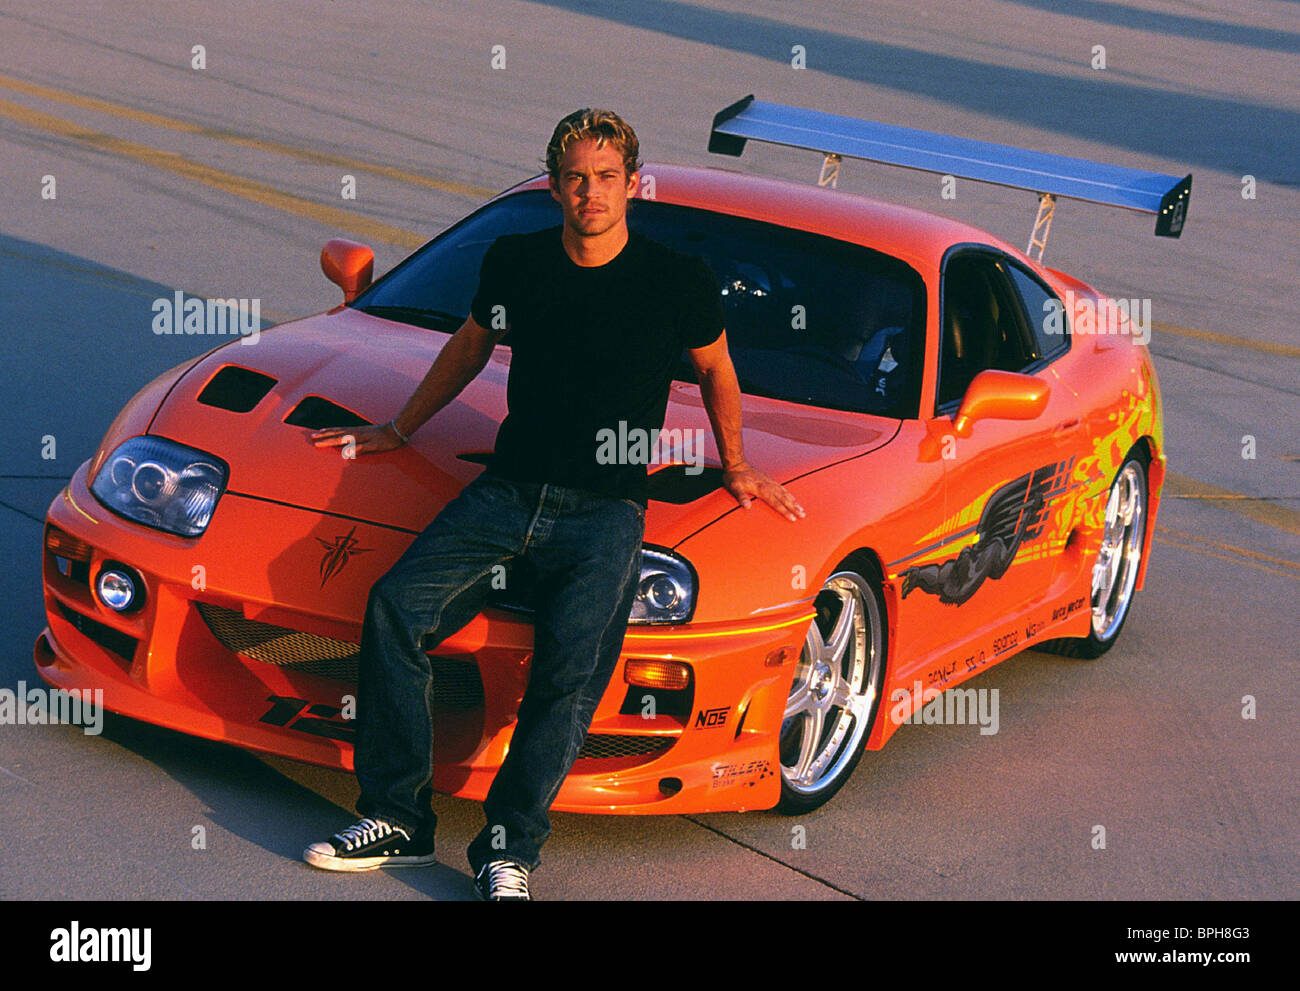 Paul Walker The Fast And The Furious 2001 Stock Photo Alamy